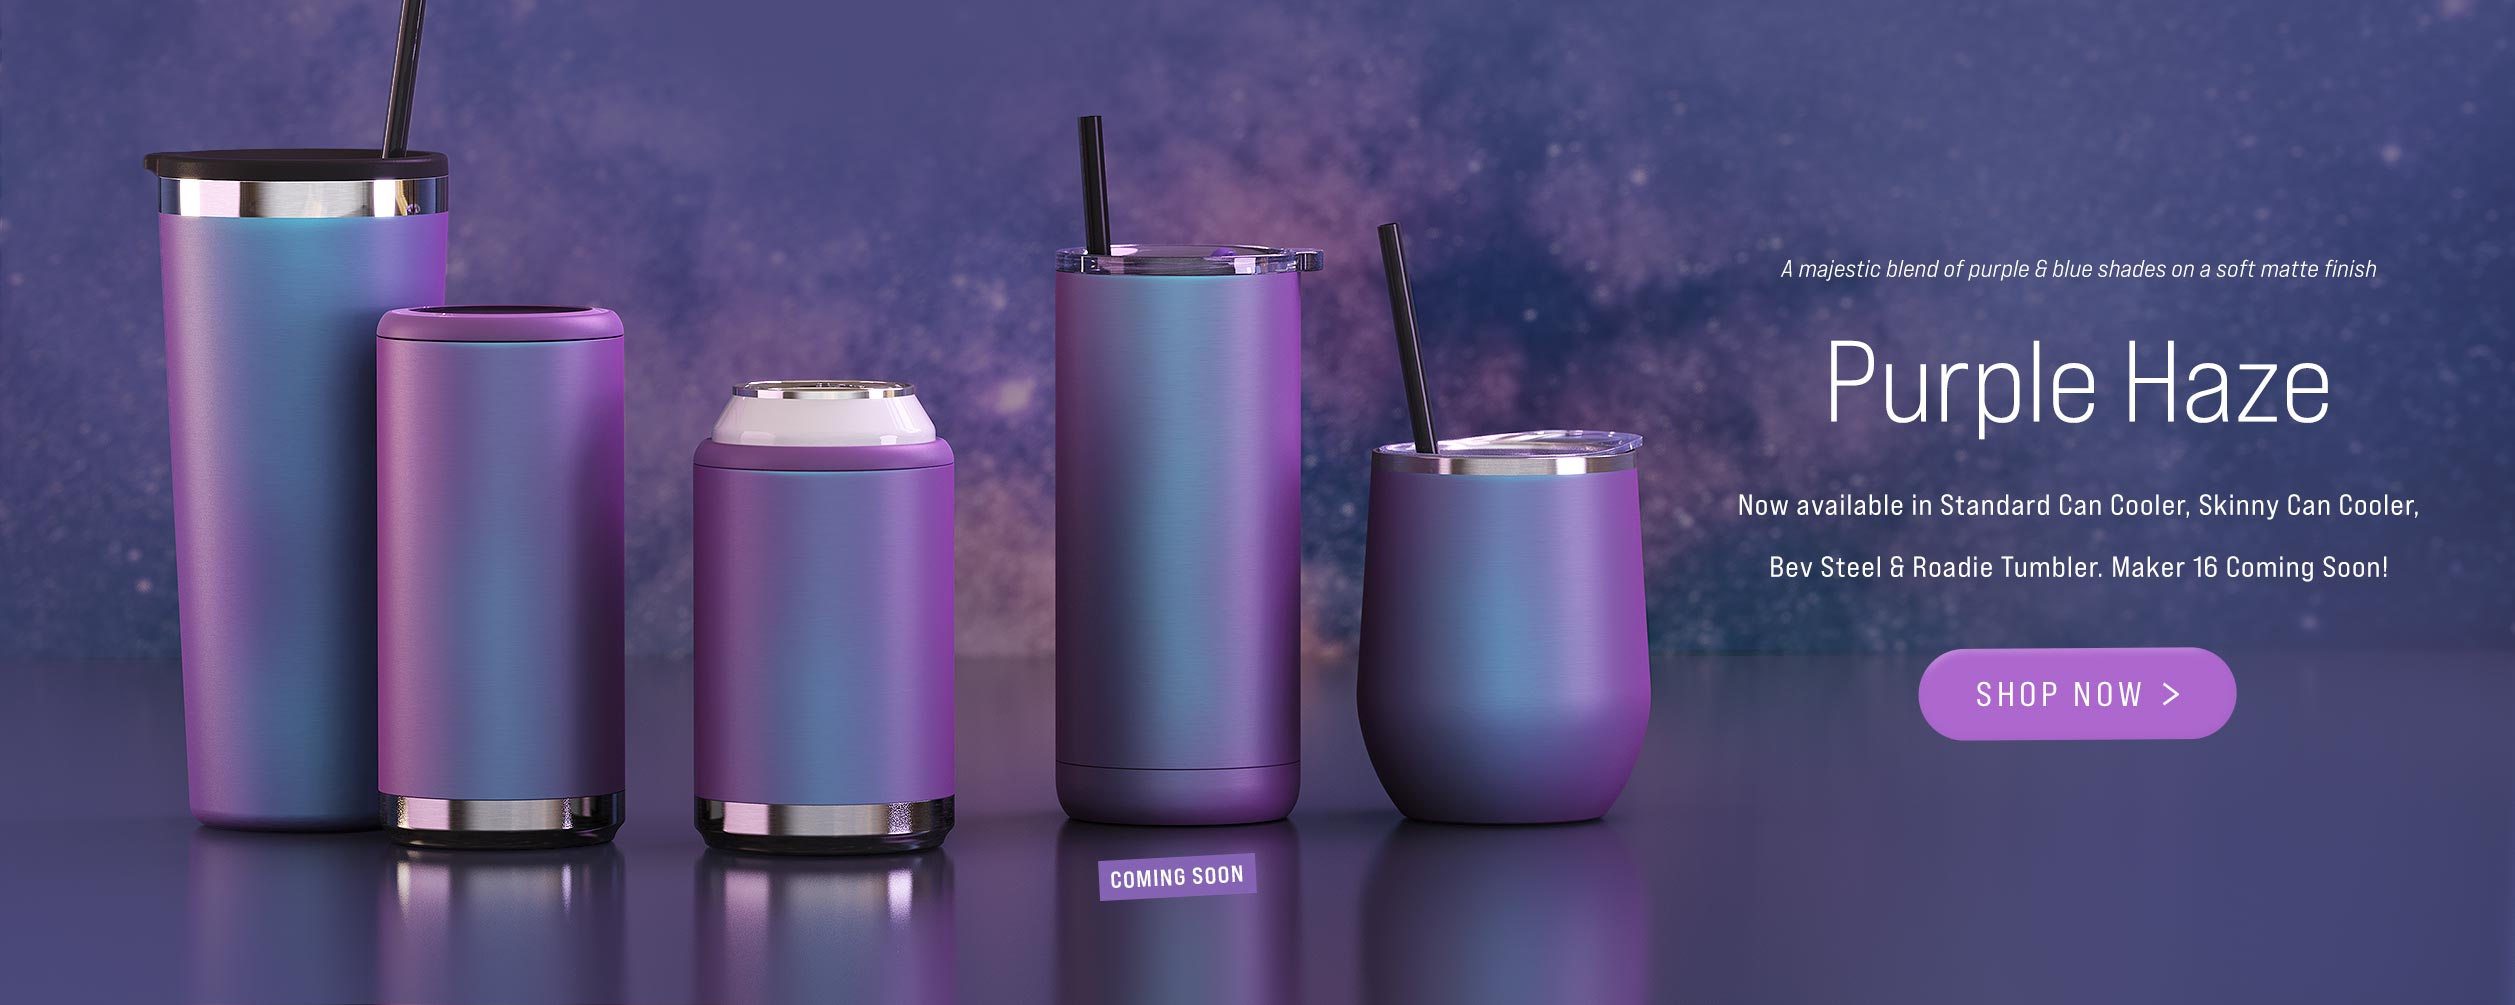 Purple Haze Collection is now in stock for Skinny Can Cooler, Standard Can Cooler, Bev Steel and Roadie Tumbler. Maker 16oz Tumbler coming soon.